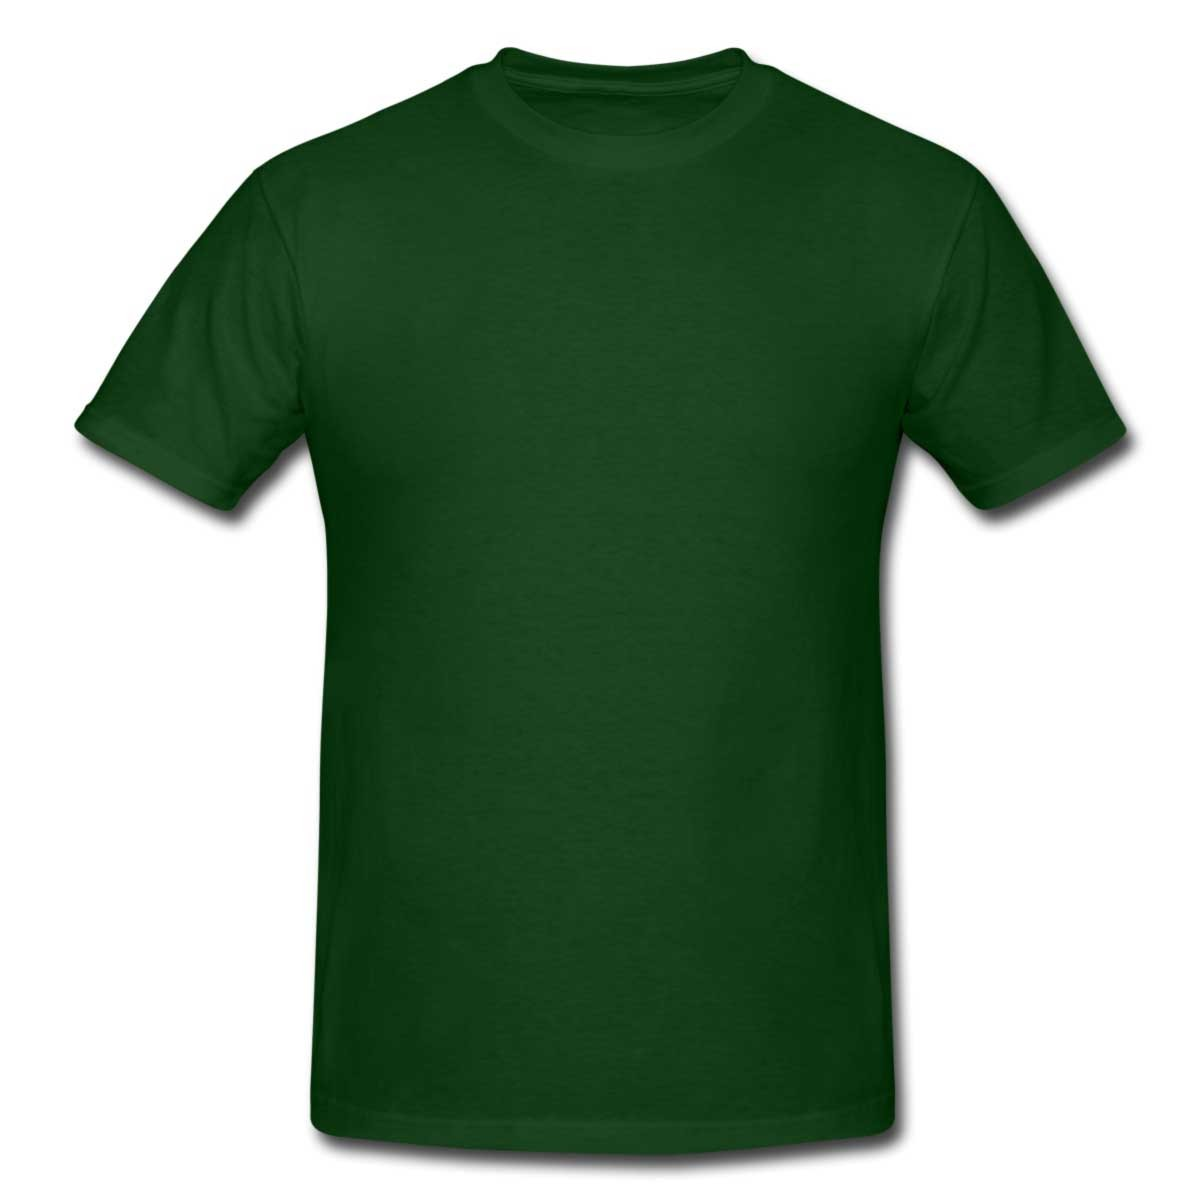 T-shirt Green - TLR Striking Web Solutions